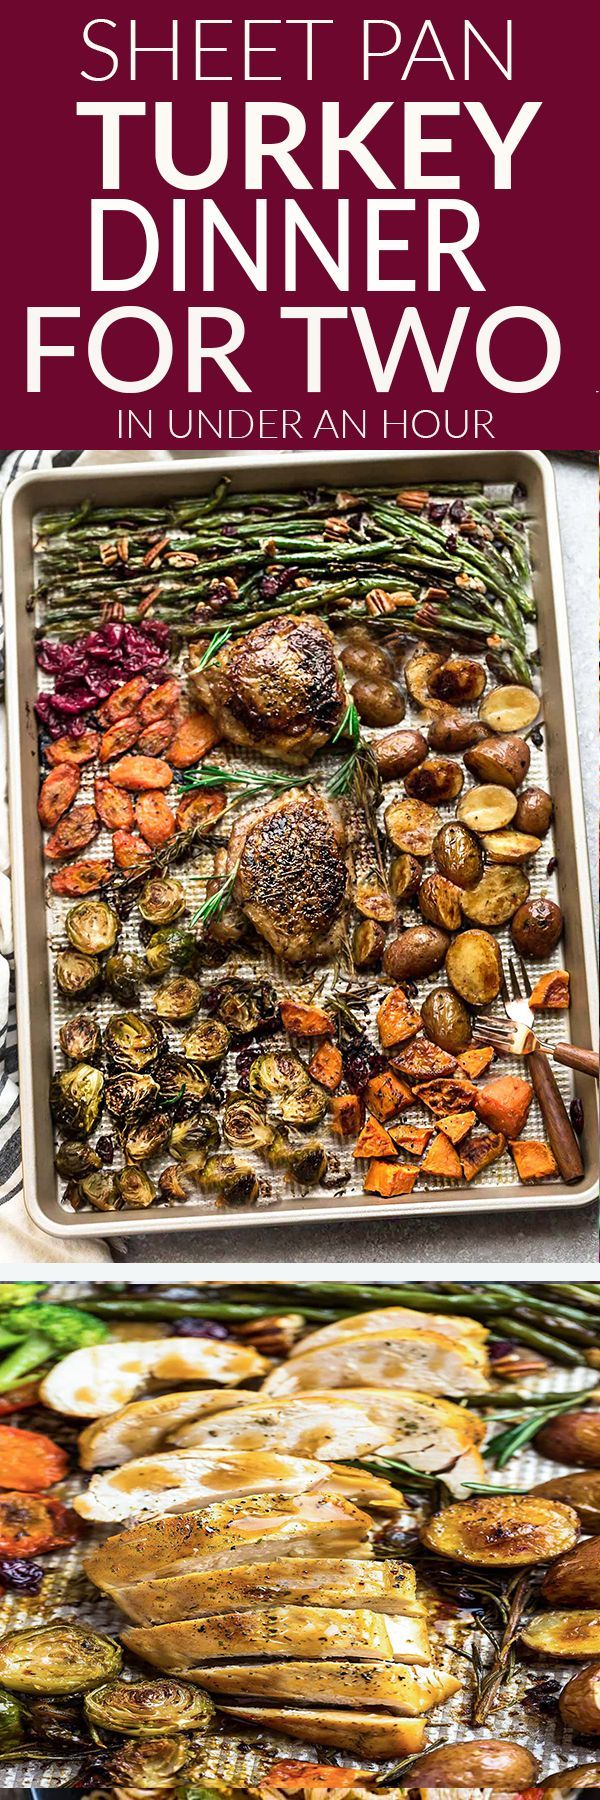 Sheet Pan Turkey Thanksgiving Dinner For Two – an easy and healthy one pan Thanksgiving (or Christmas) meal for two (or four). Best of all, everything cooks up in under an hour. Includes a juicy turkey, potatoes, Brussels sprouts, green beans, carrots, sweet potatoes, broccoli, pecans and cranberries. Perfect for a small family or anytime you're craving a festive meal and don't want to fuss with a whole turkey. #thanksgiving #christmas #sheetpan #onepan #roast #dinnerfortwo #dinner